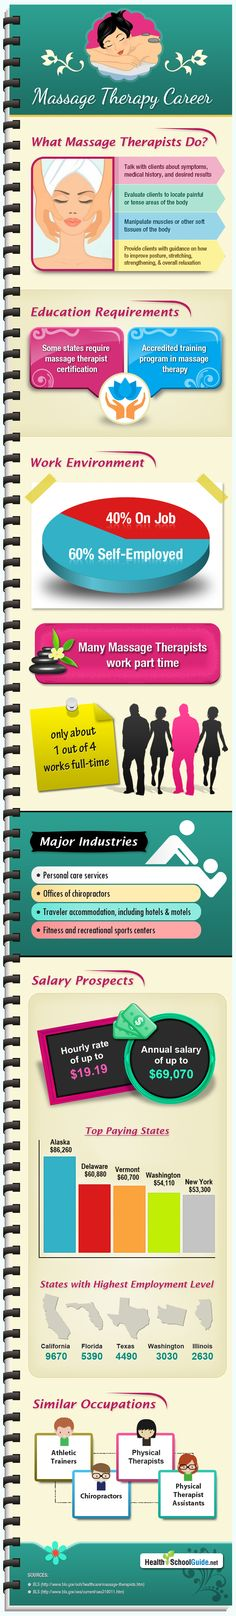 Massage Therapy Career Information